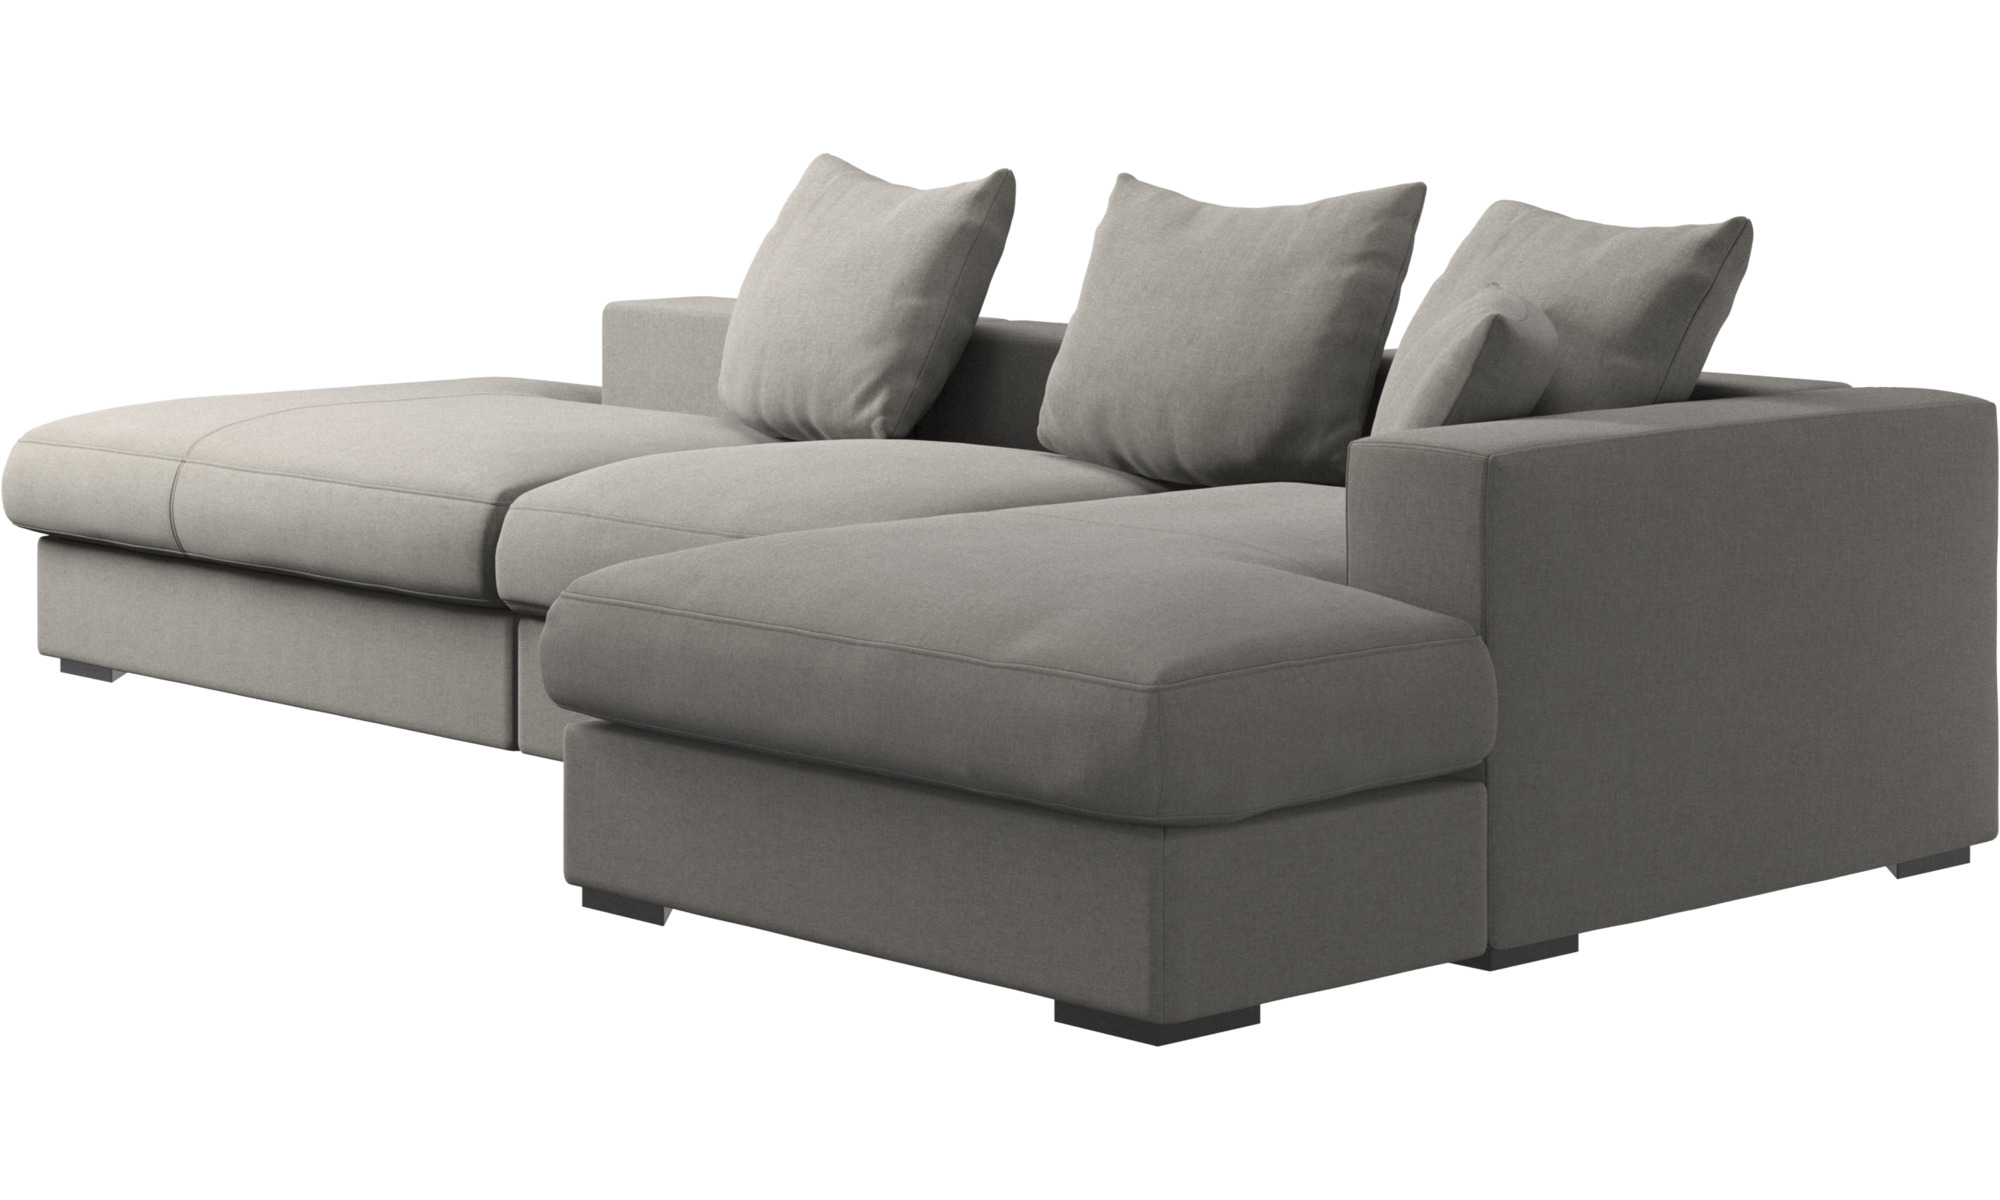 Gentil ... 3 Seater Sofas   Cenova Sofa With Lounging And Resting Unit   Gray    Fabric ...